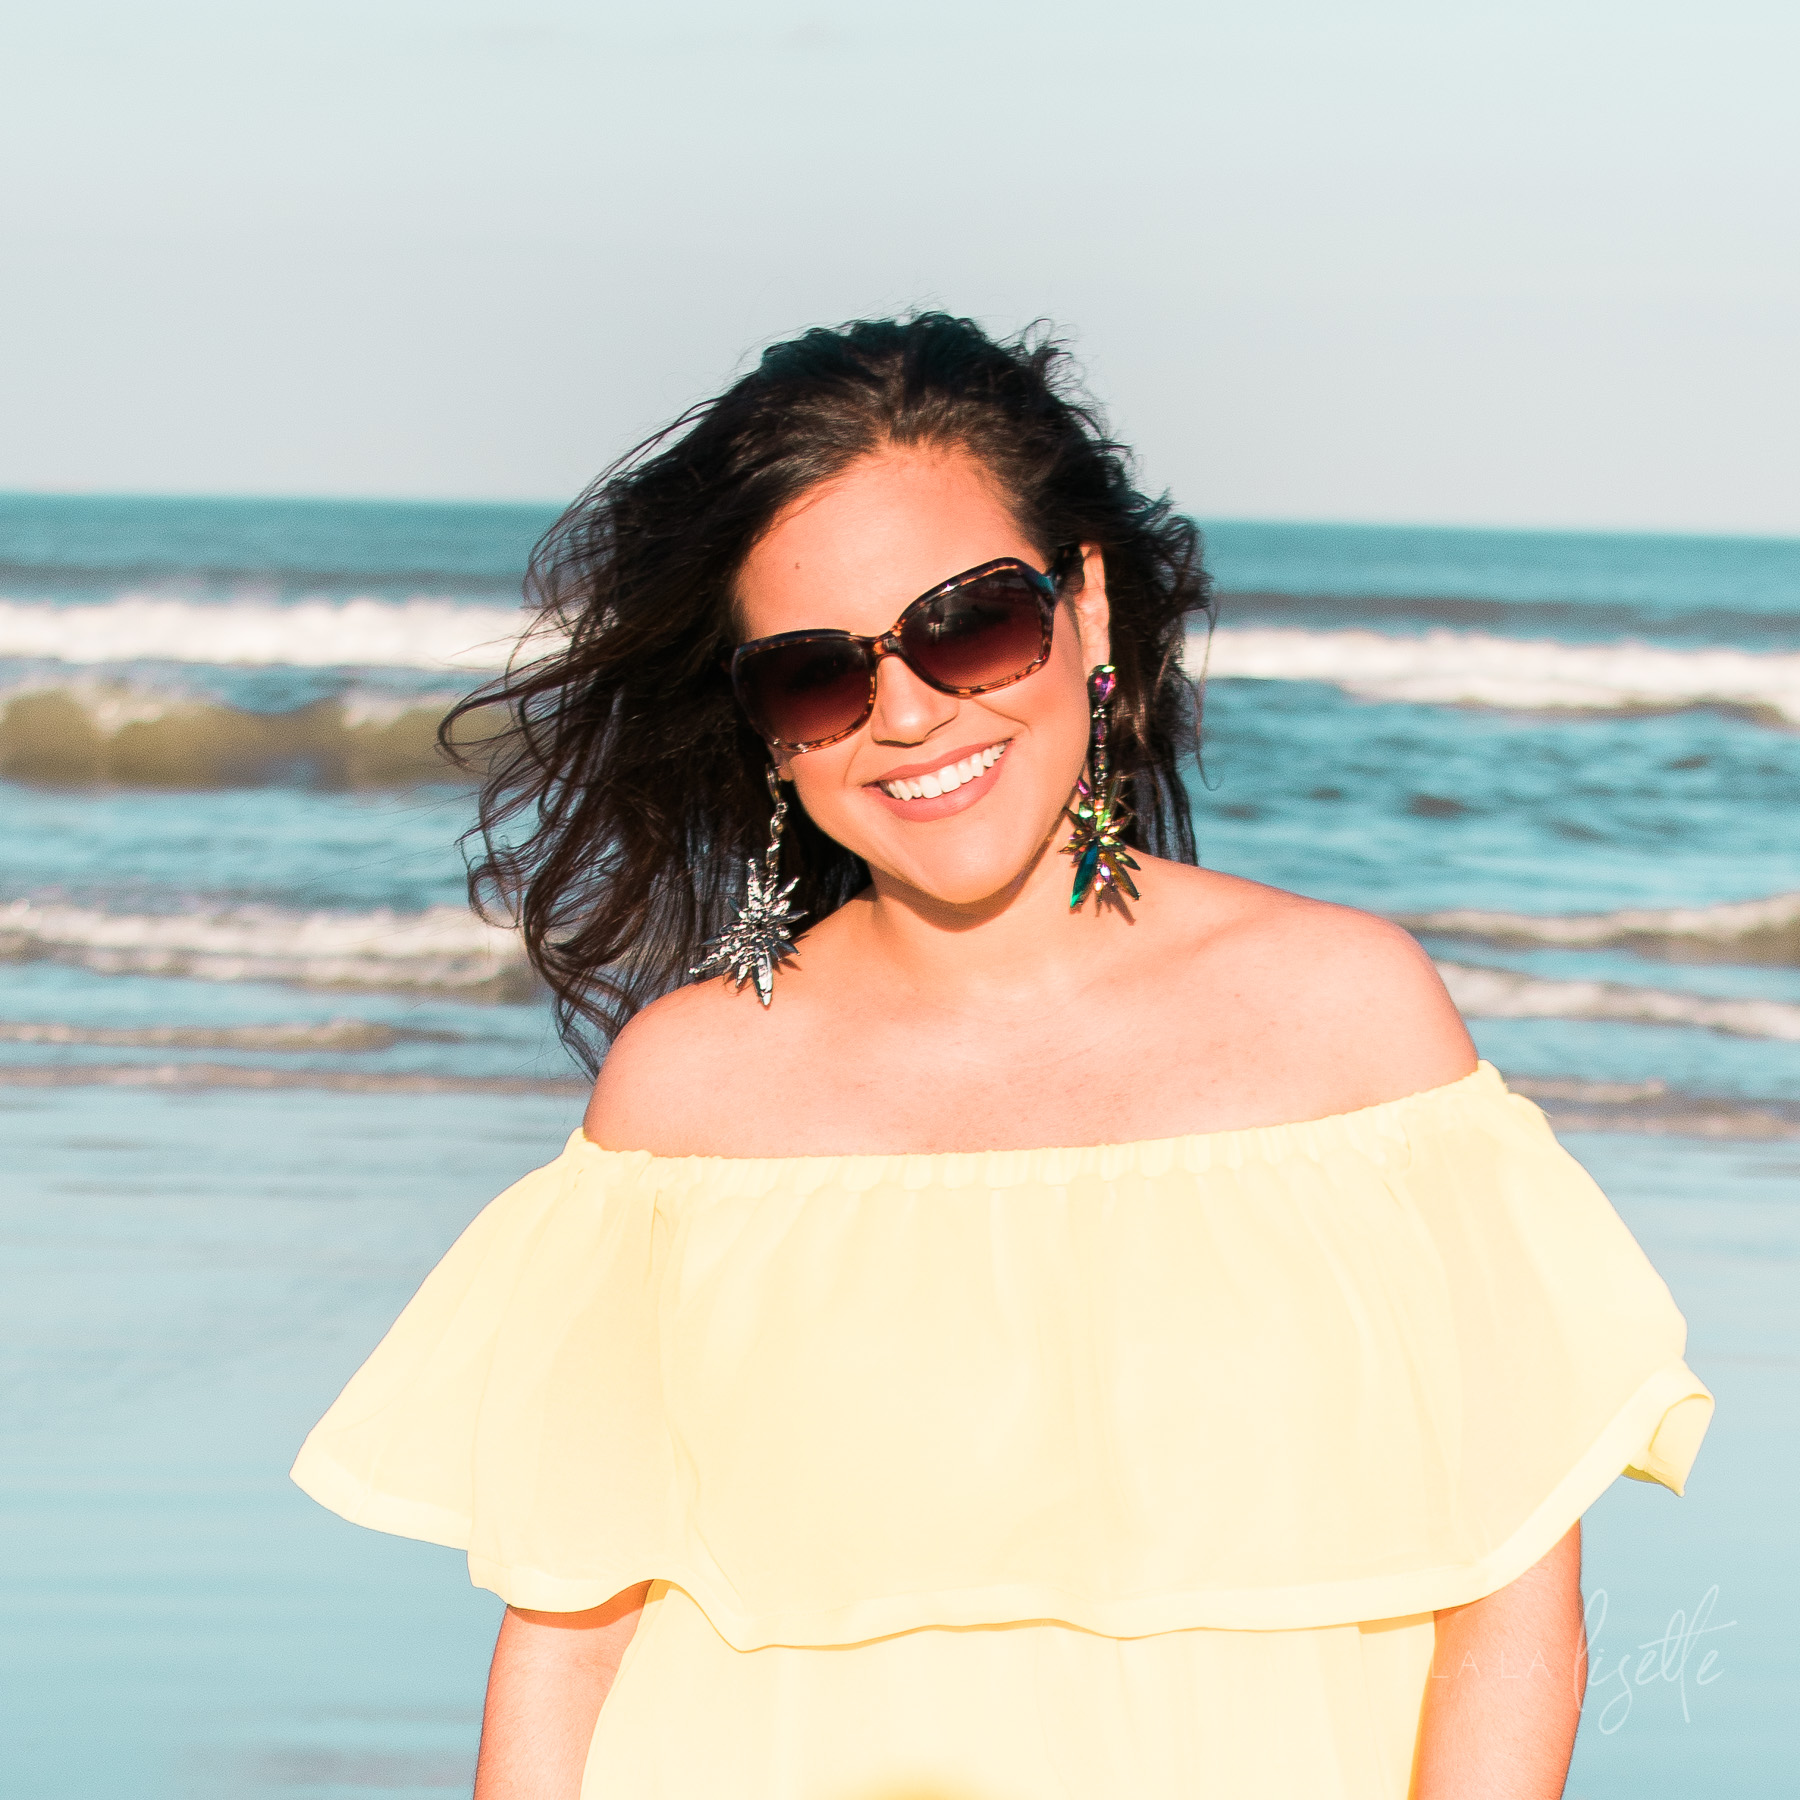 woman standing on beach wearing yellow sundress and sunglasses